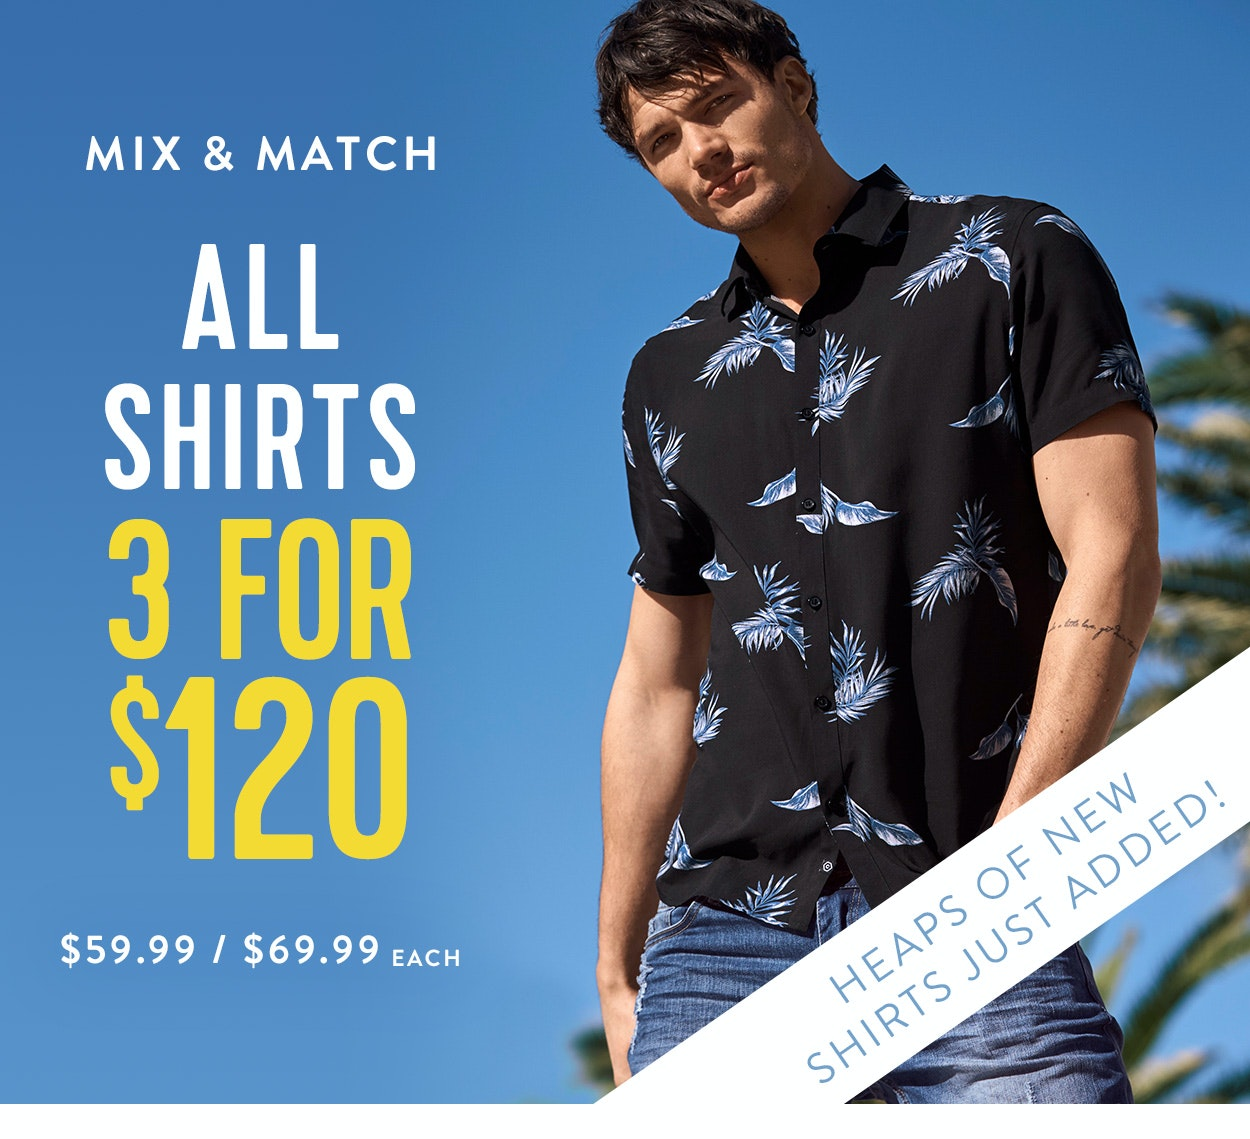 Shop Shirts 3 for $120